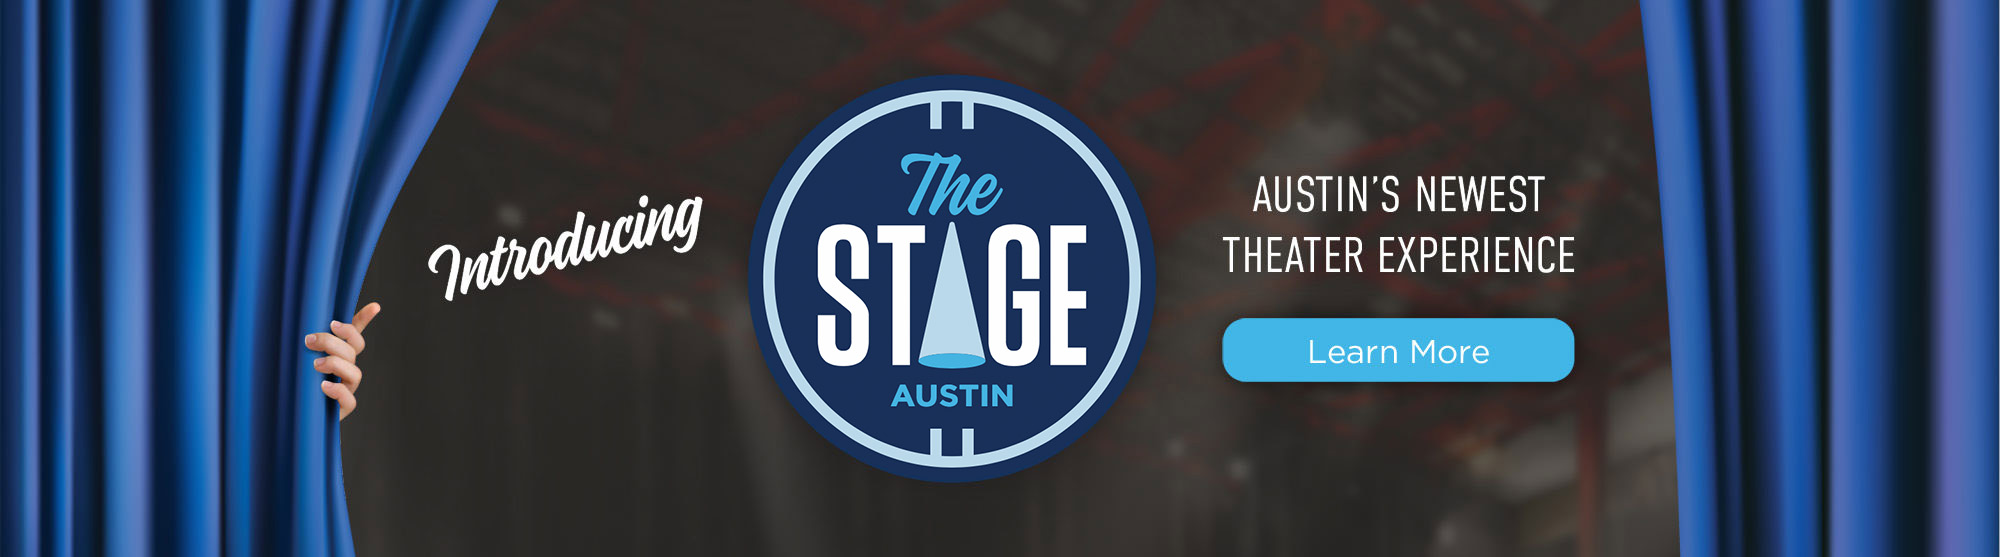 the-stage-slide-01-introducing